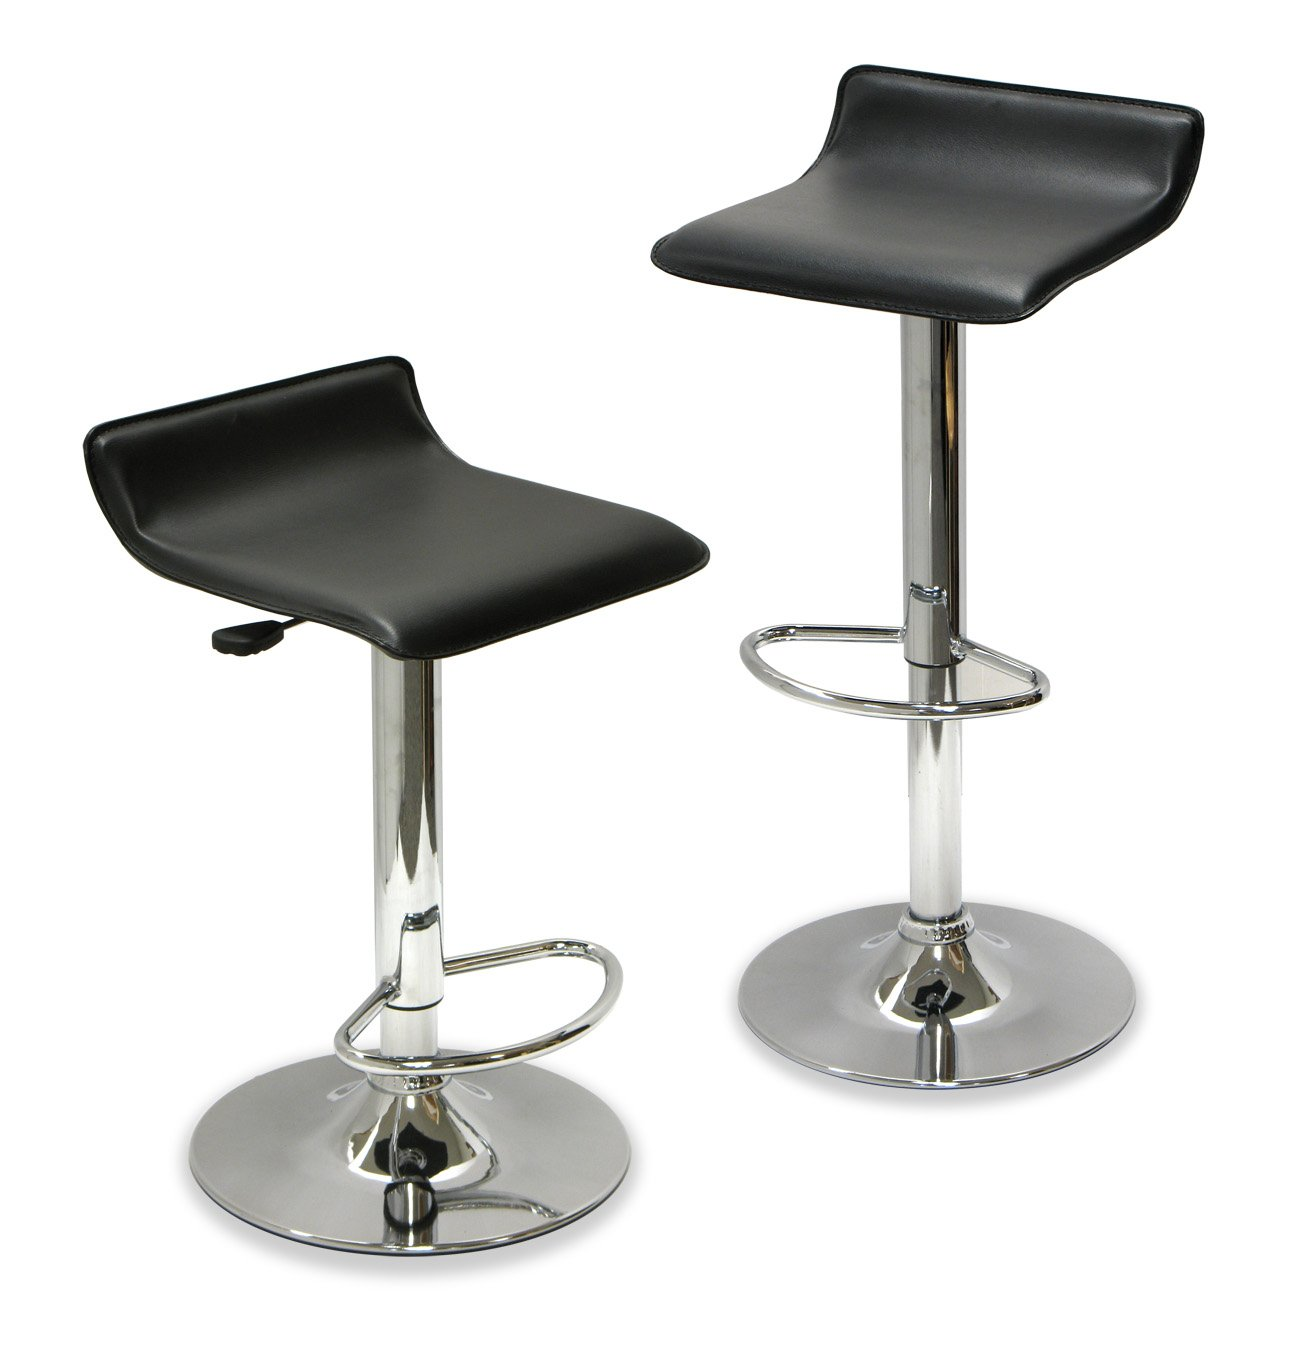 Winsome 93329 Metal leg black cushion seat Iron Faux seat SET OF 2 STOOL ADJUSTABLE K/D FAUX SEAT